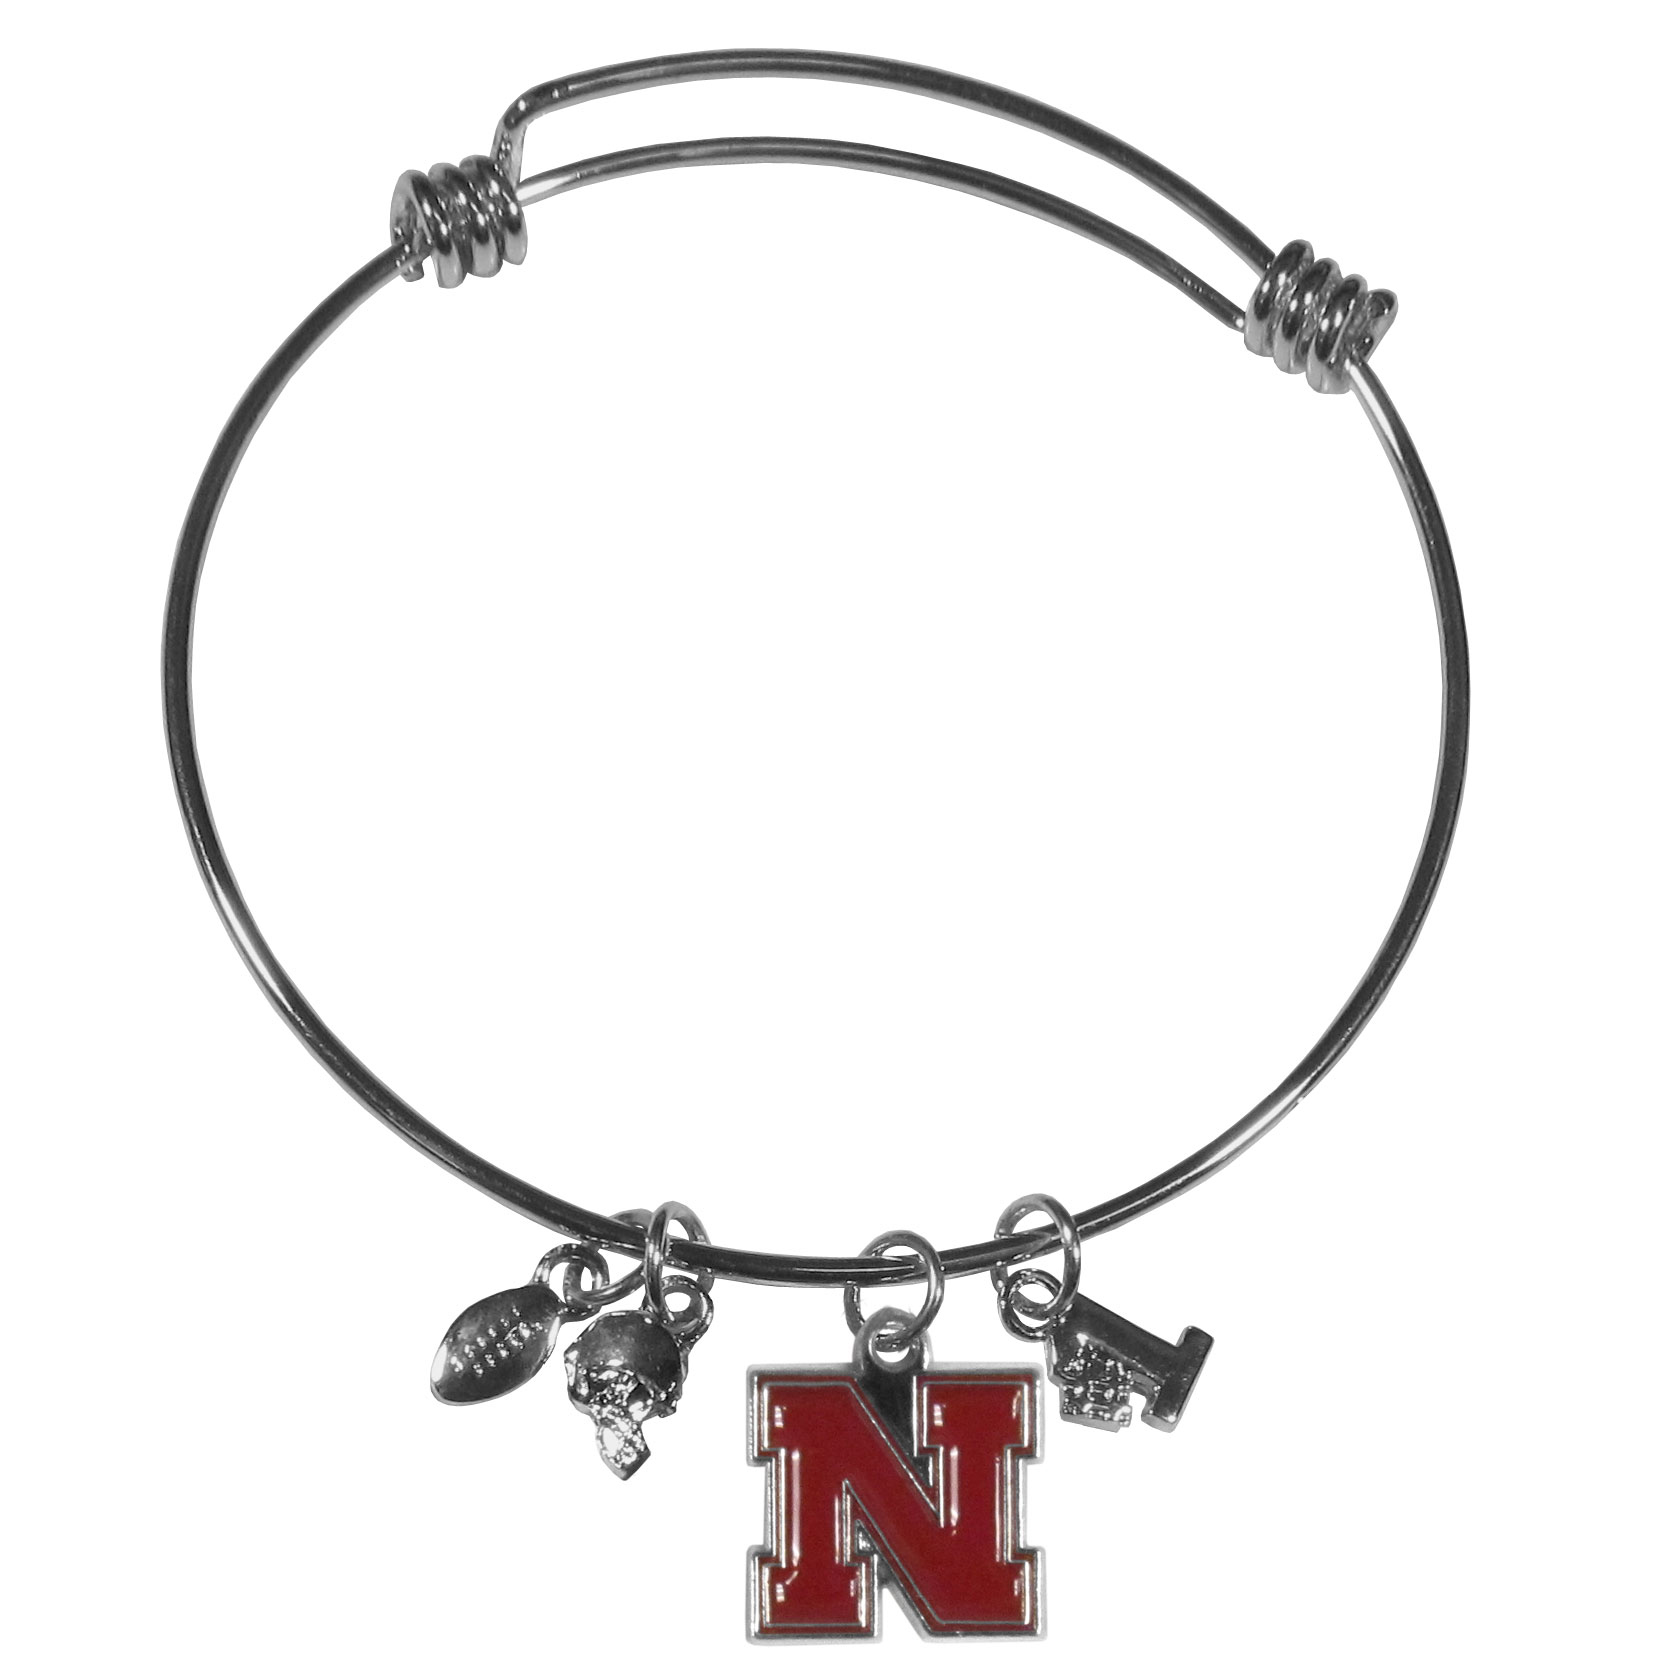 Nebraska Cornhuskers Charm Bangle Bracelet - Adjustable wire bracelets are all the rage and this Nebraska Cornhuskers bracelet matches the popular trend with your beloved team. The bracelet features 4 charms in total, each feature exceptional detail and the team charm has enameled team colors.